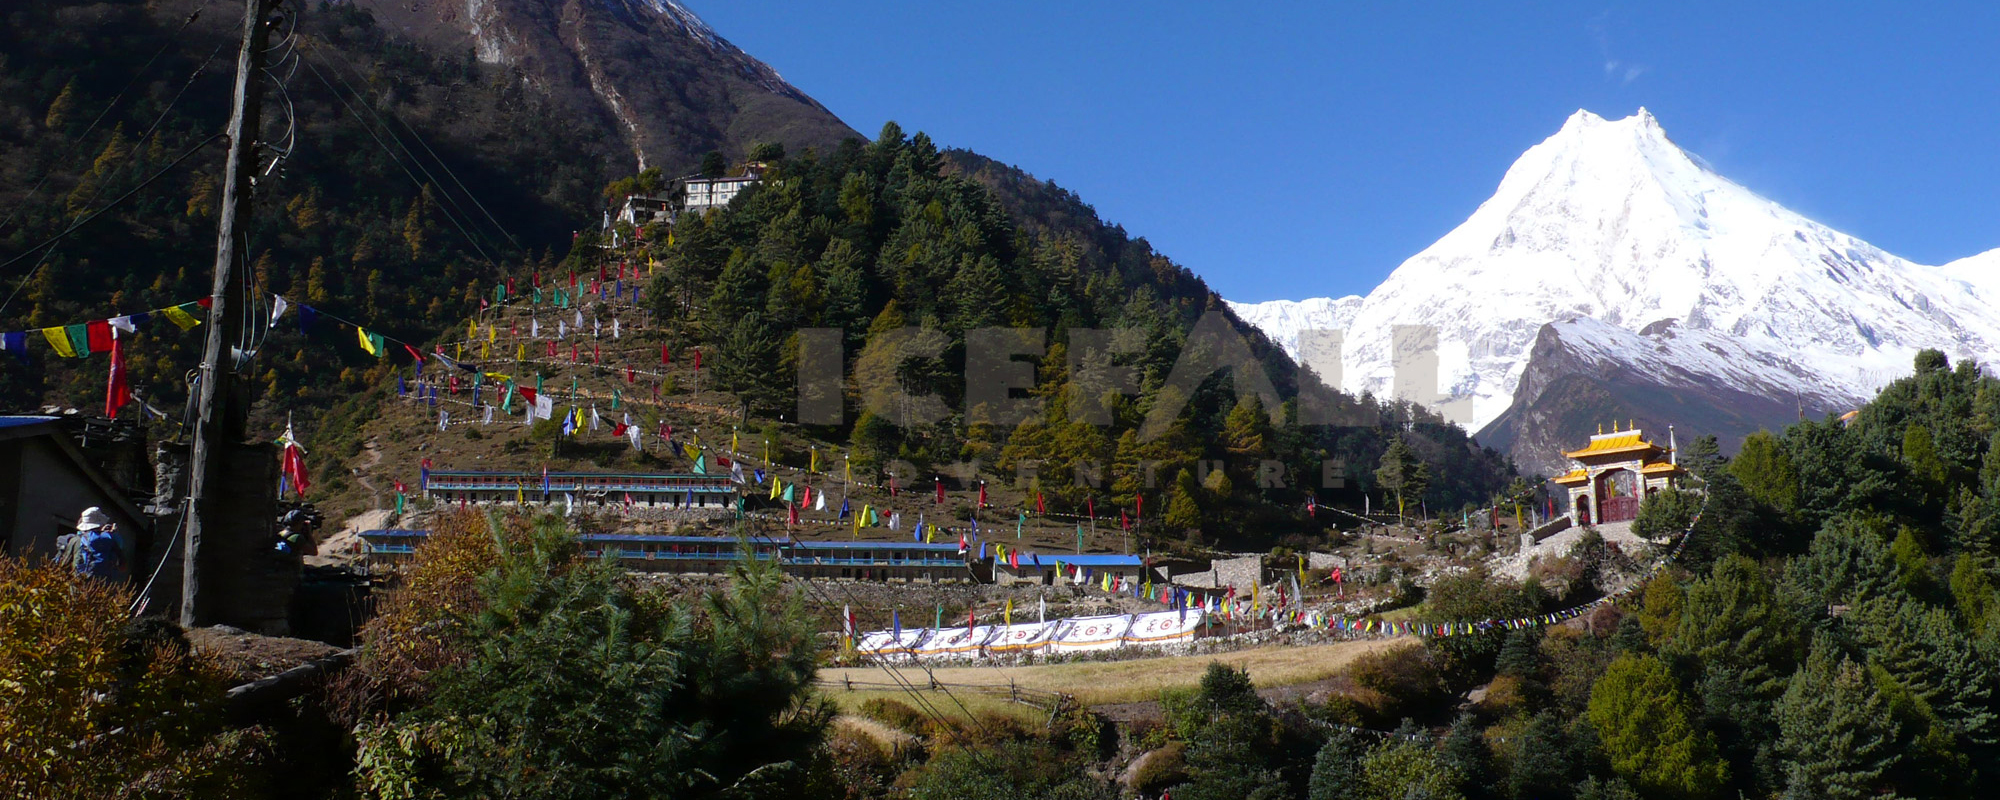 Manaslu Trek Via Tsum Valley-25 Days